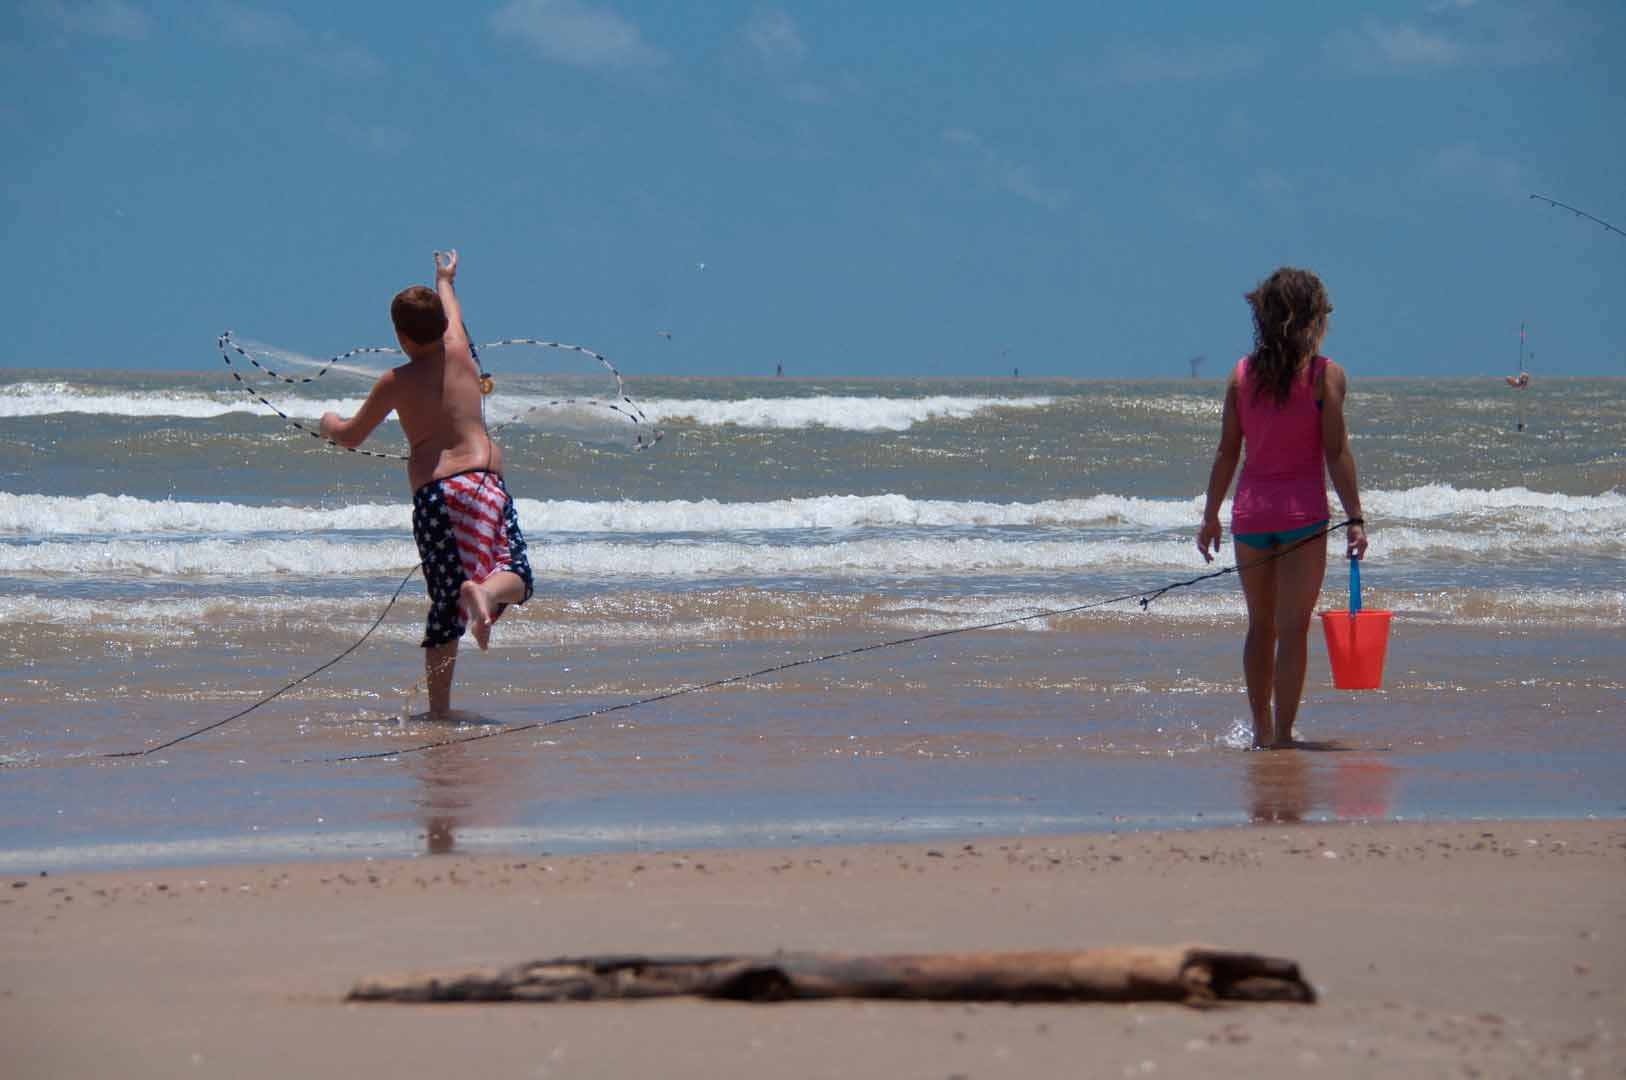 SurfsideLateJune_20150627_201